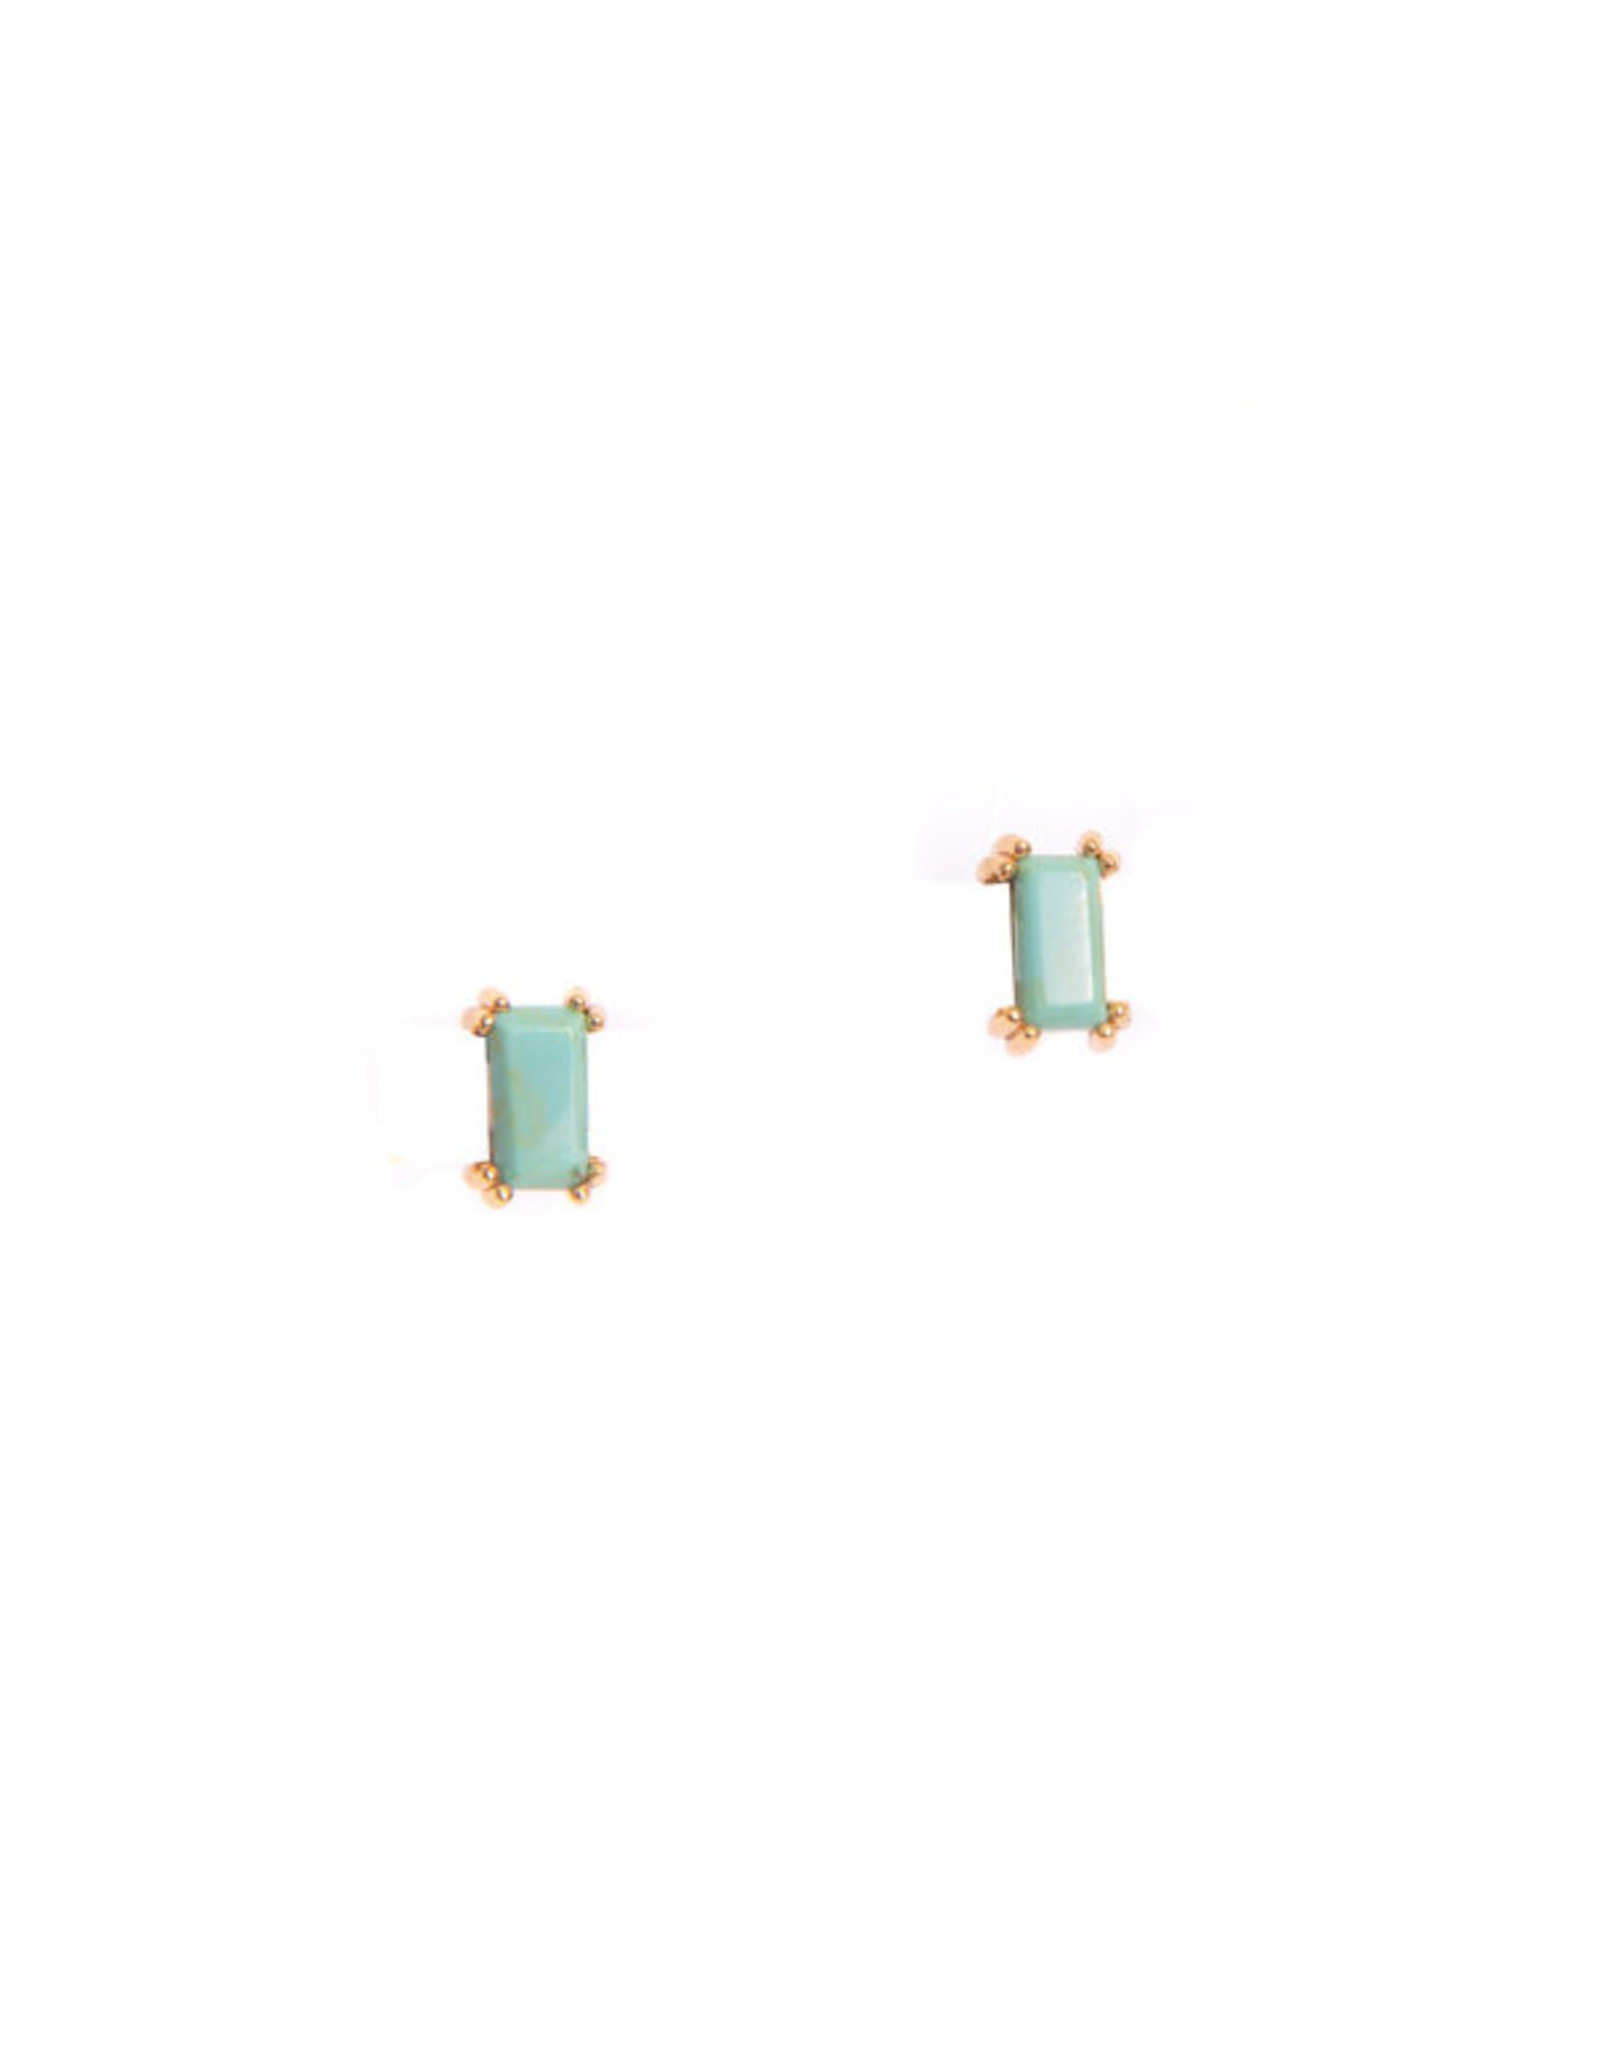 Hailey Gerrits Designs Baguette Studs - Green Turquoise